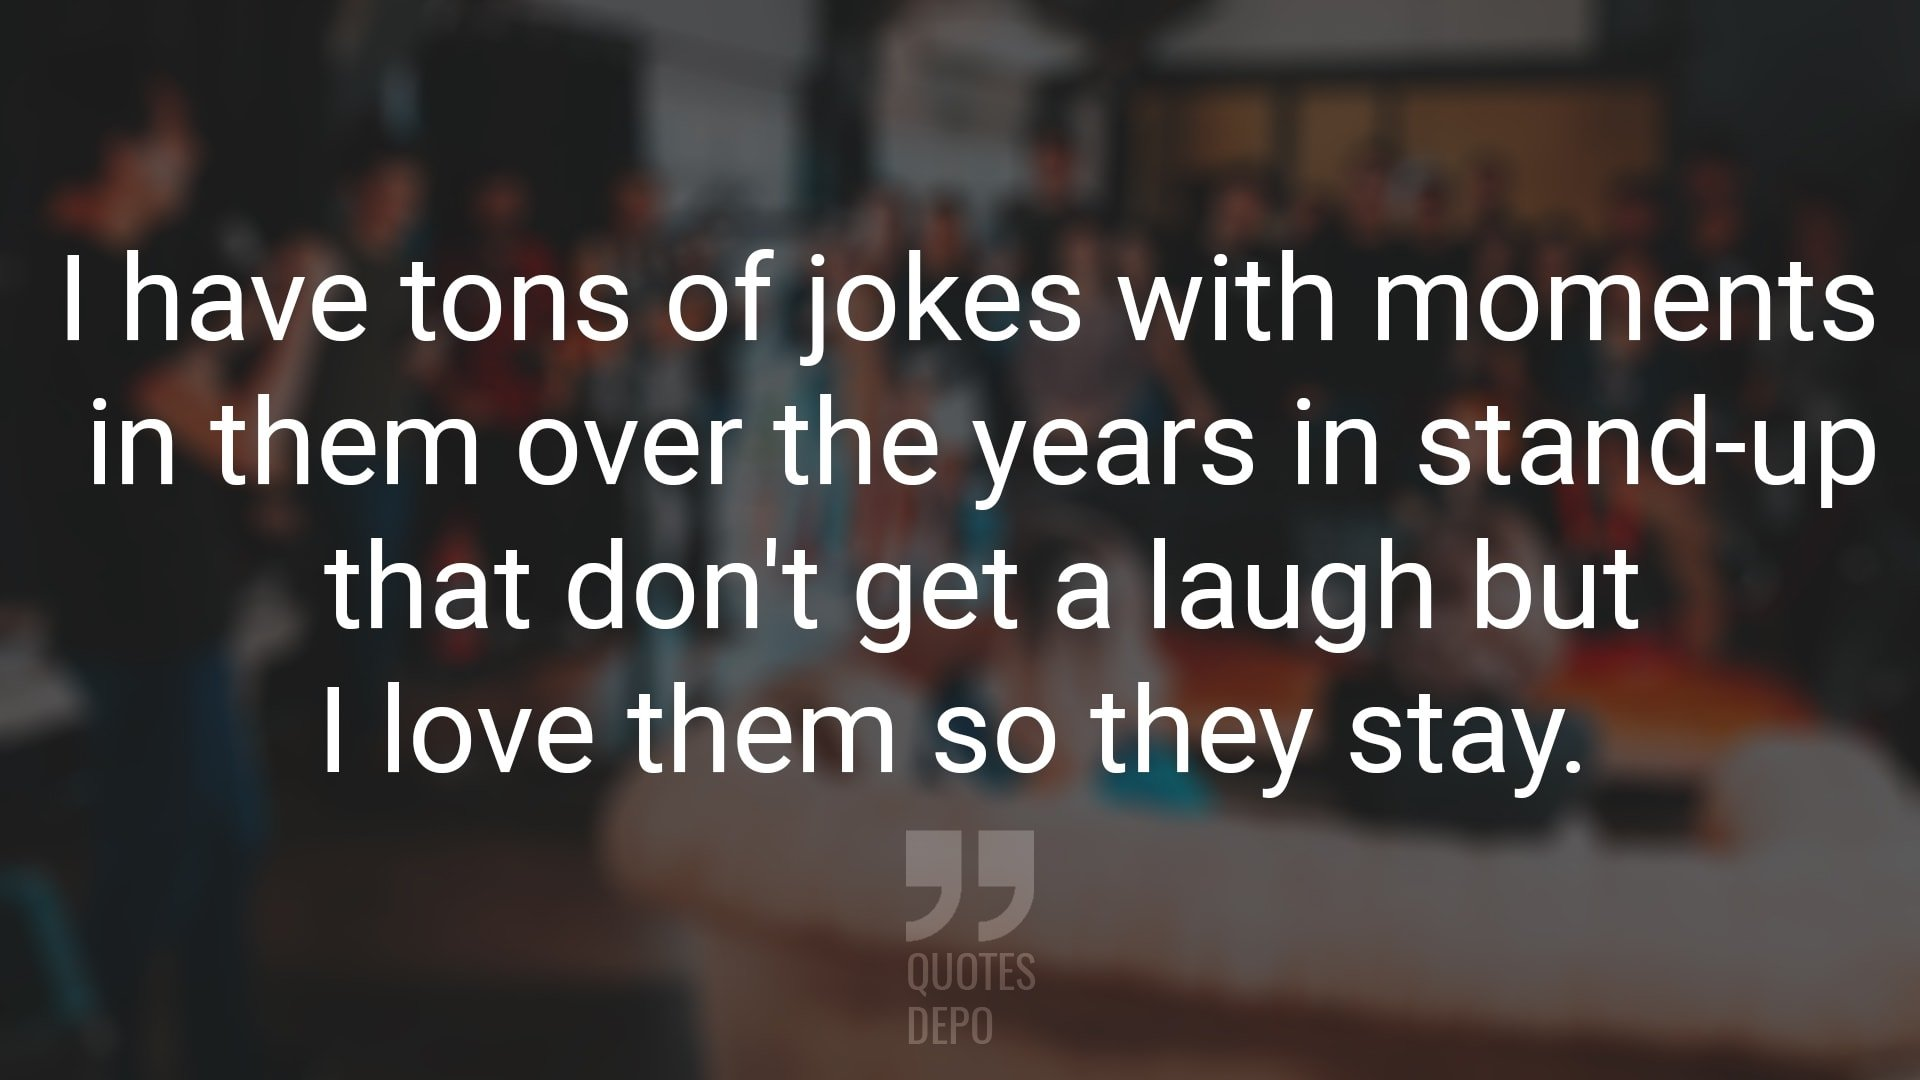 I Have Tons of Jokes